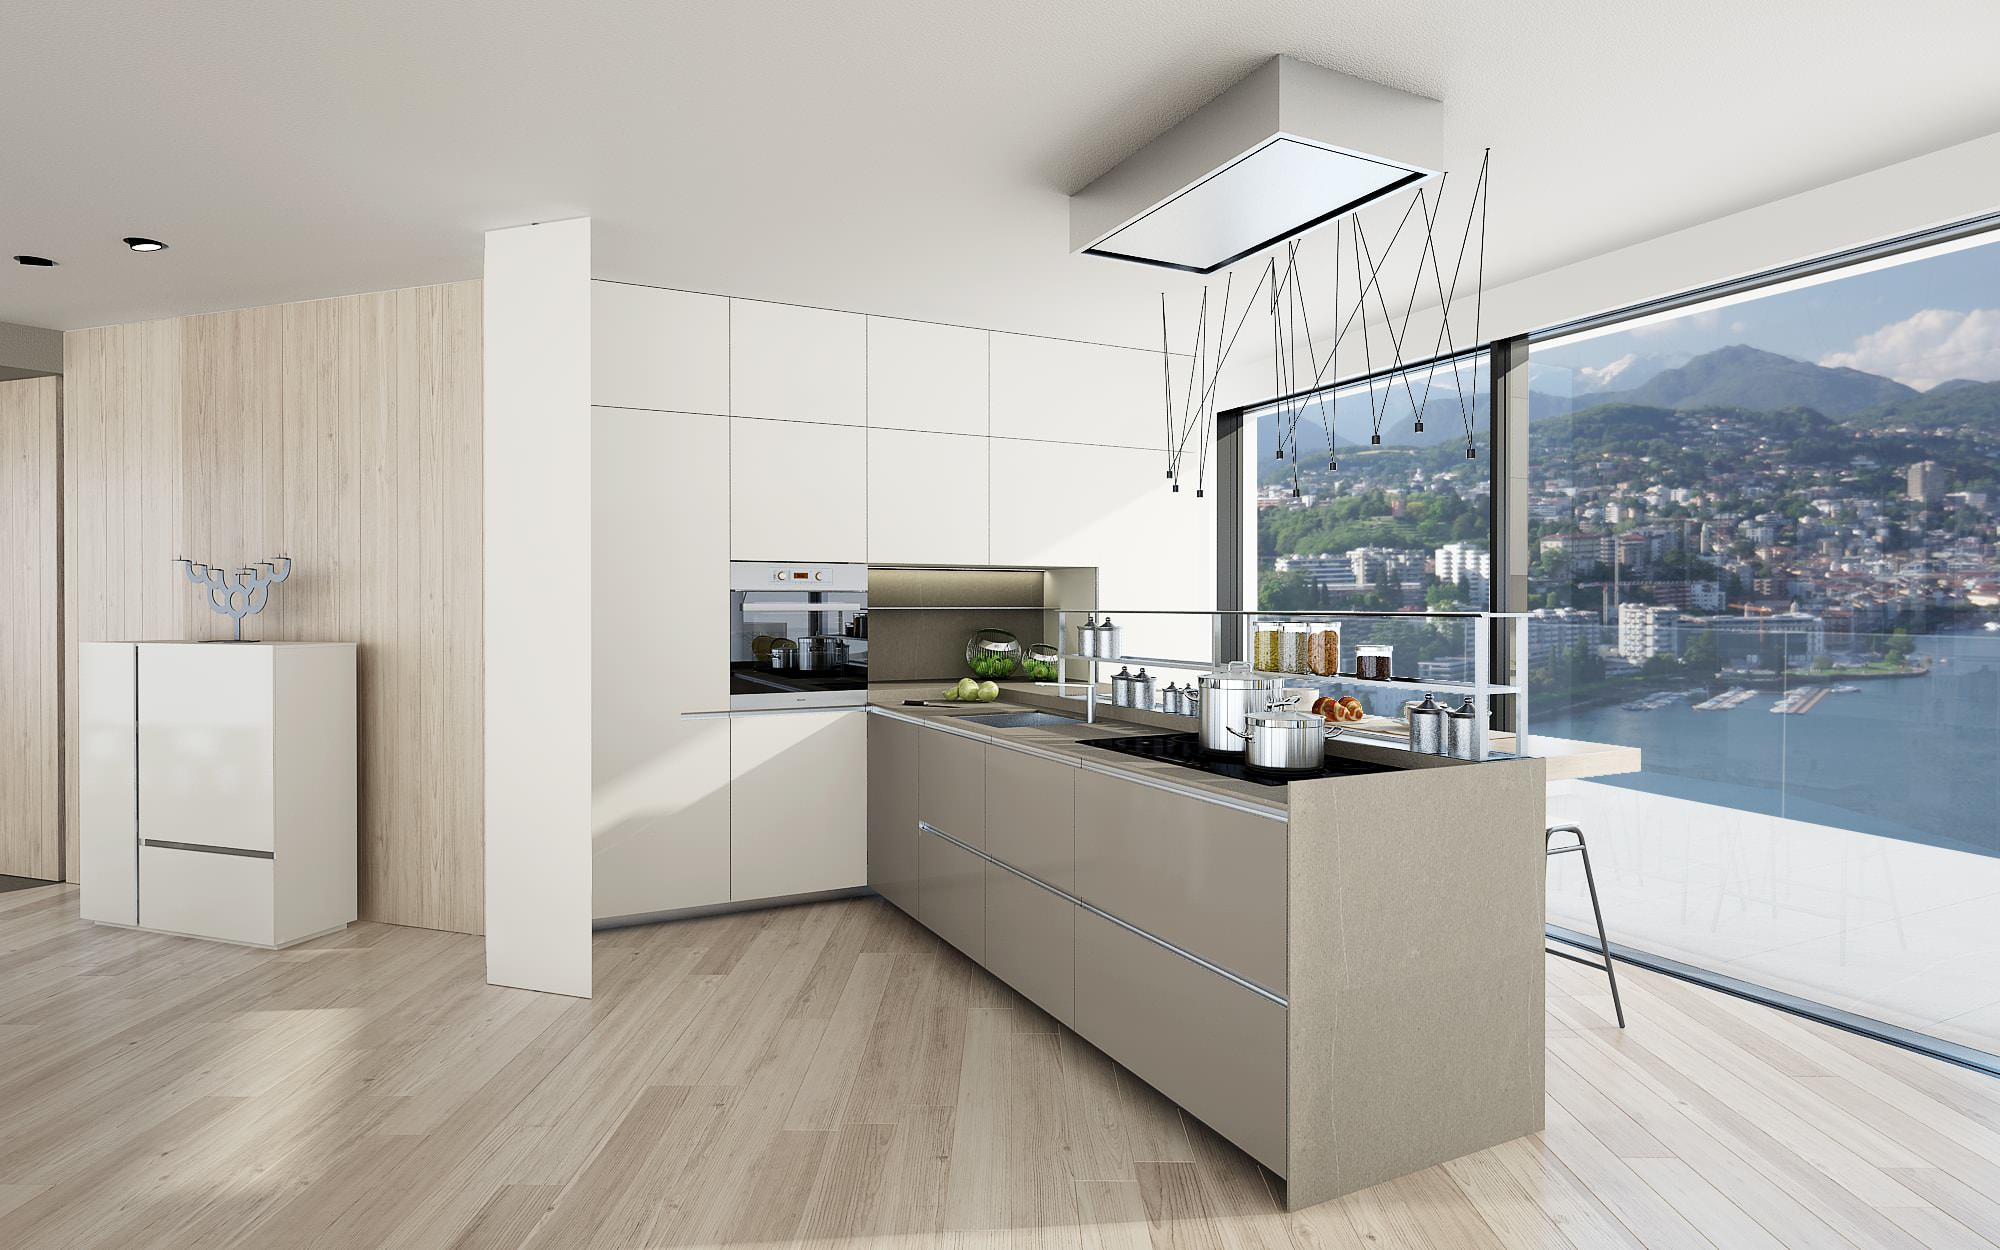 kitchen penthouse design Lugano Switzerland Ticino